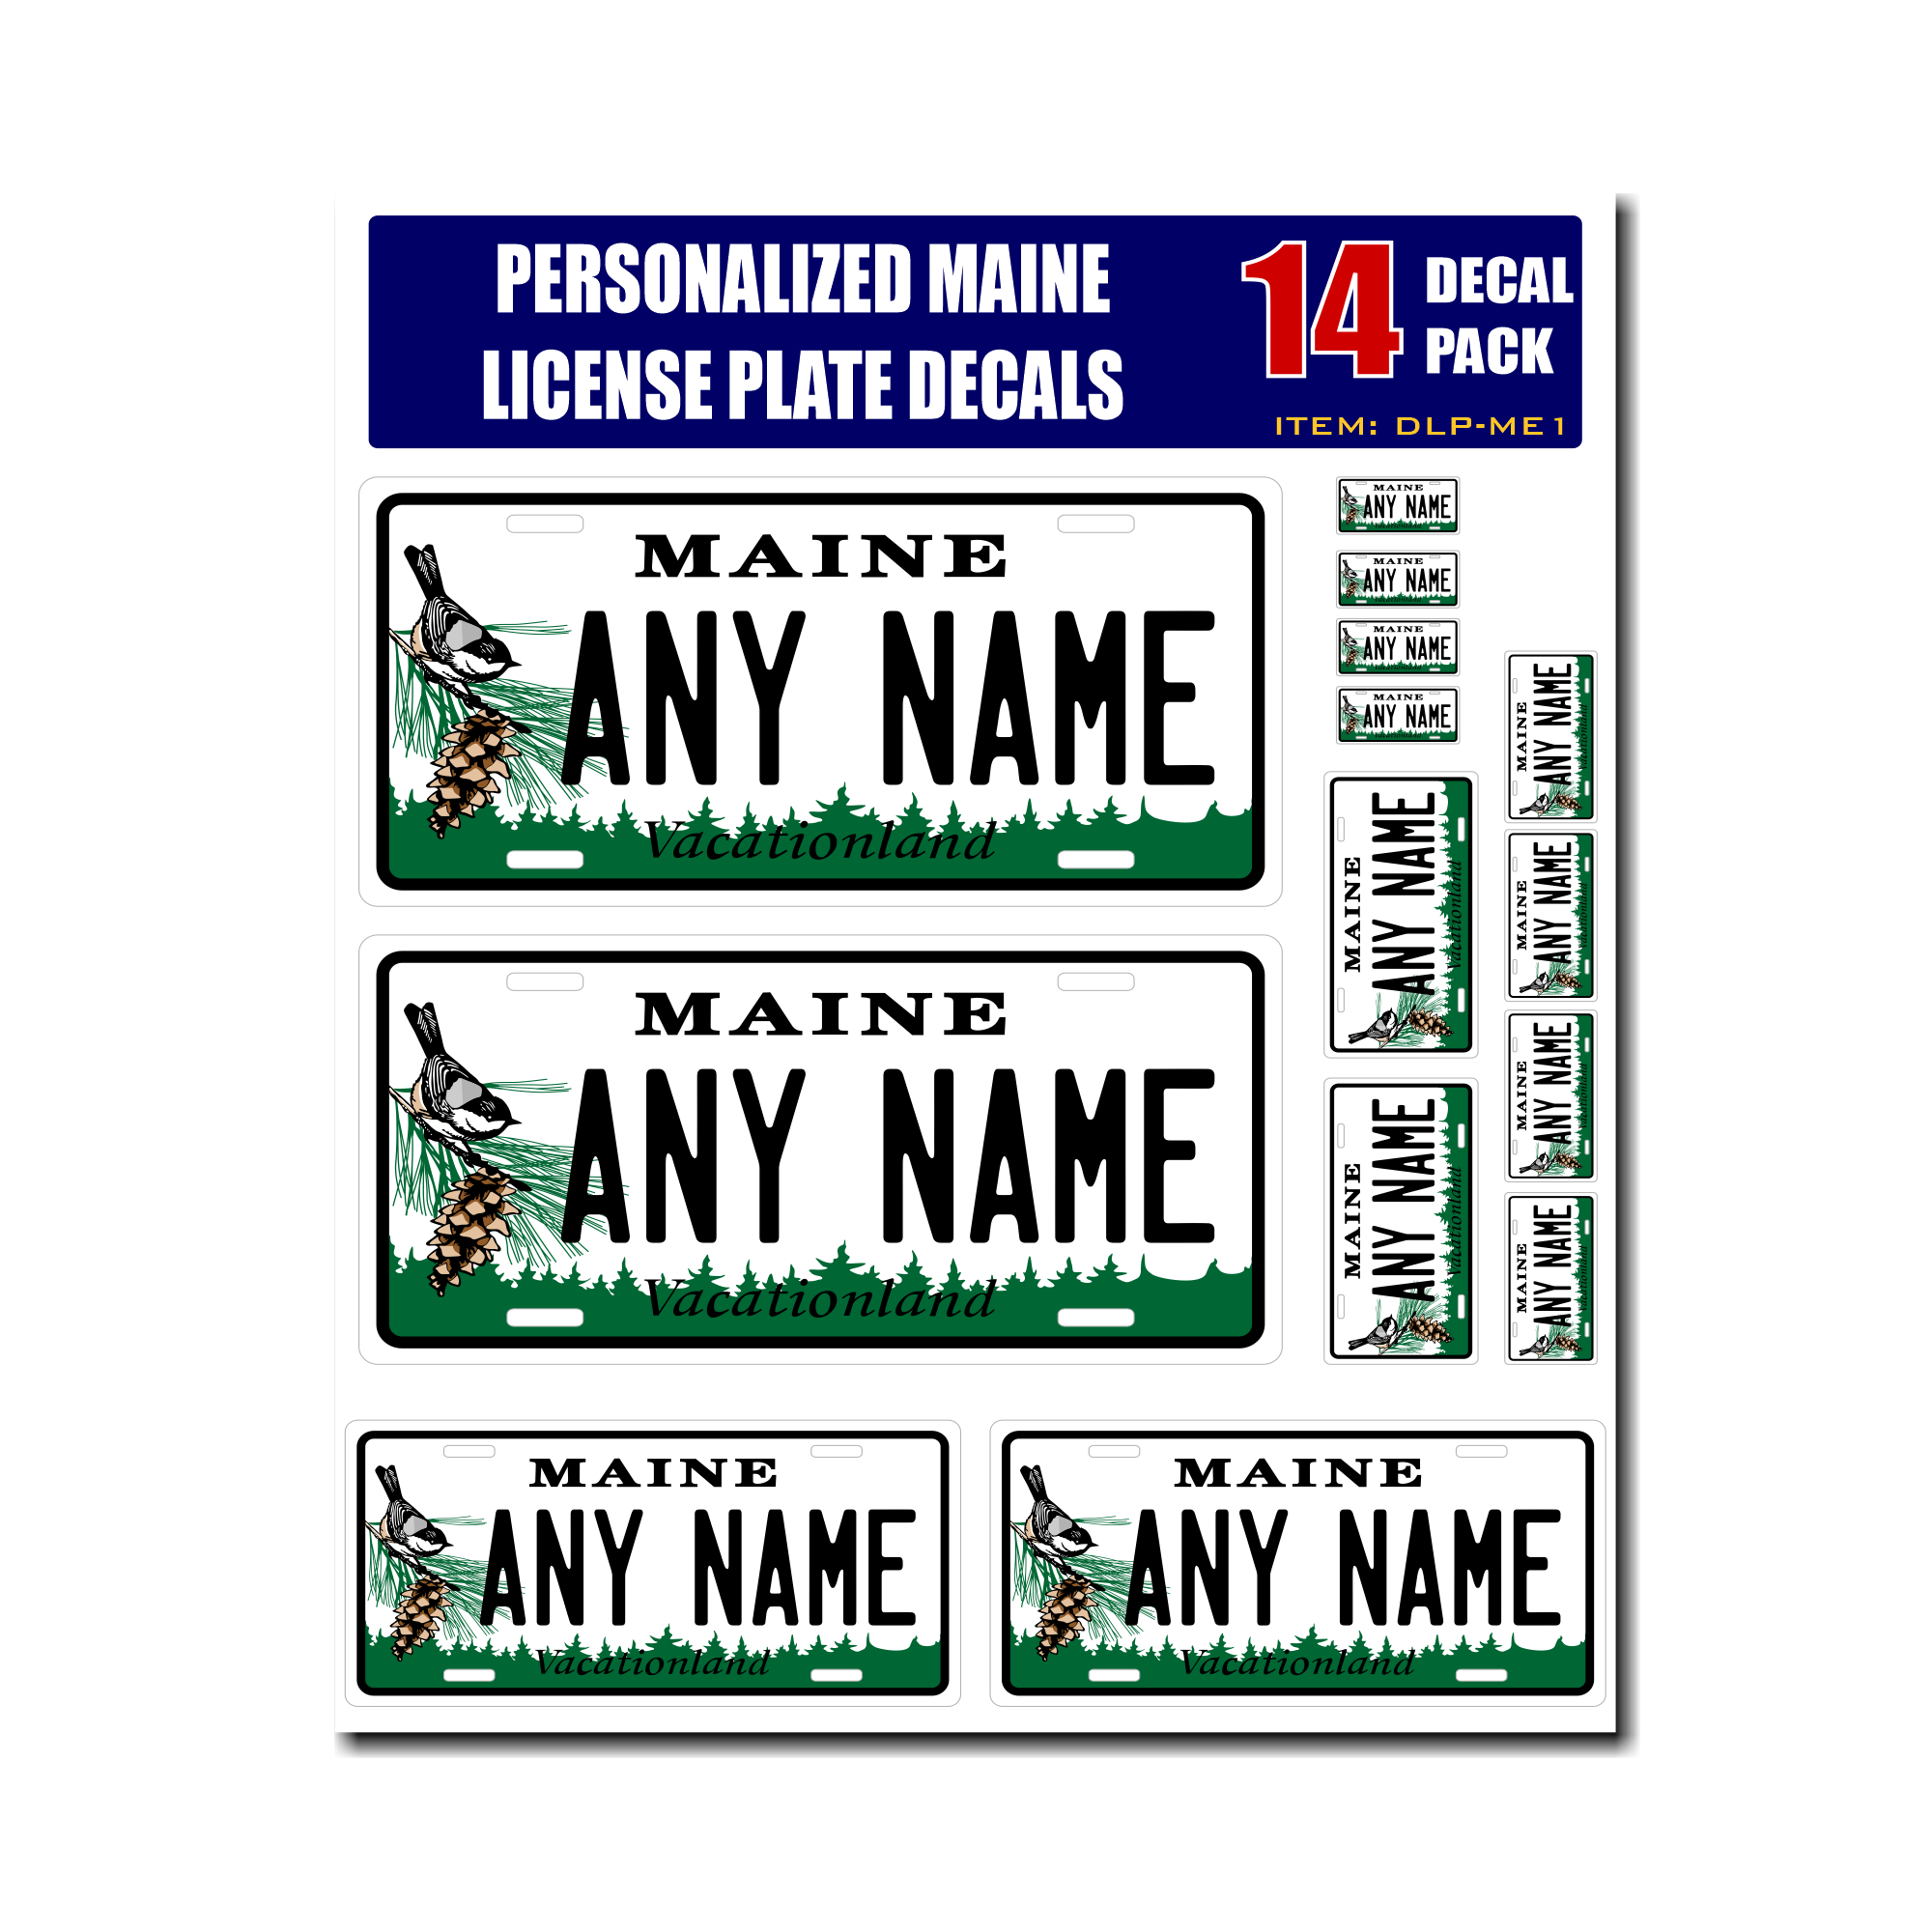 Home decal stickers personalized maine license plate decals stickers